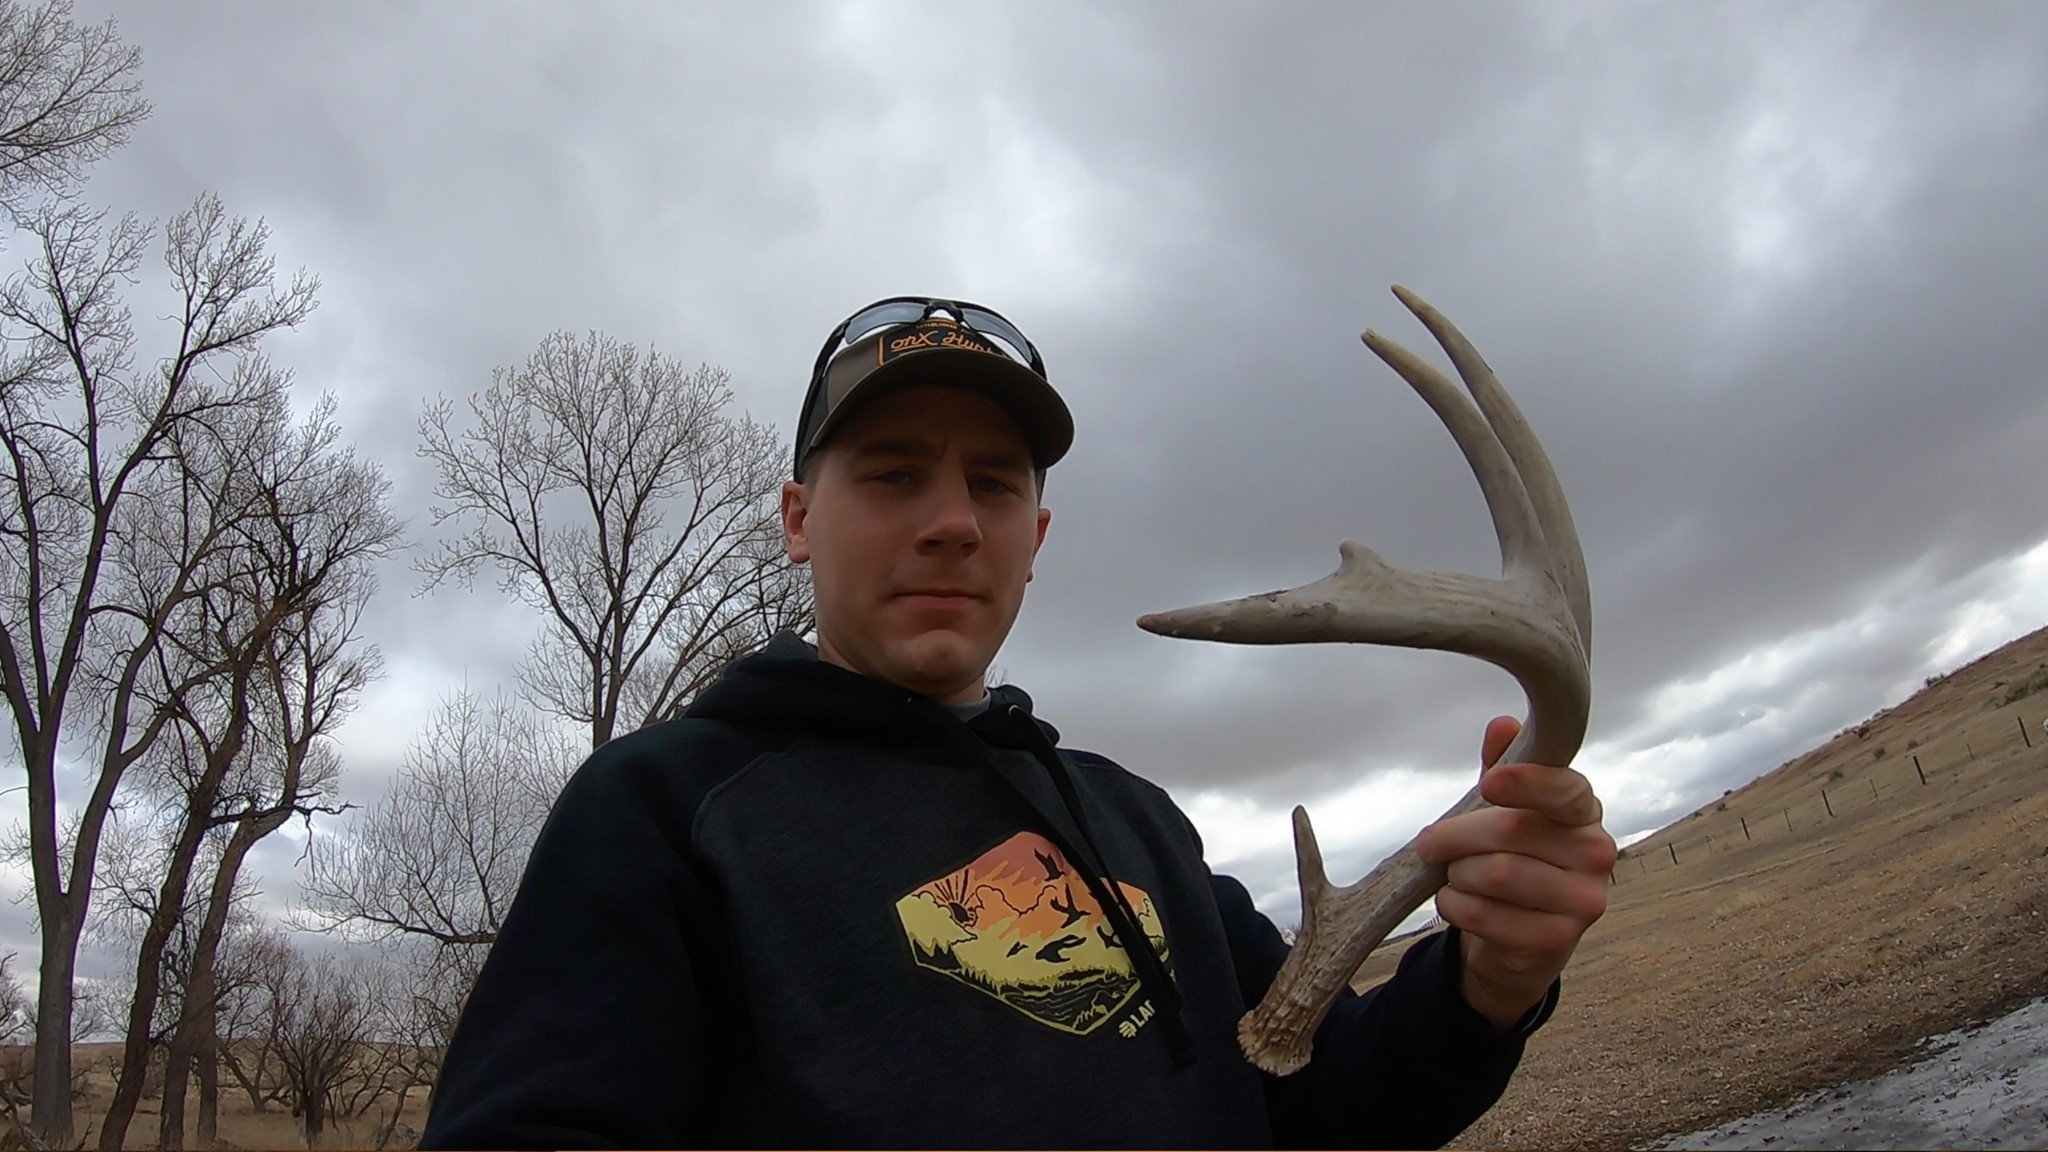 Antler found near cover in Kansas by Clay O'dell